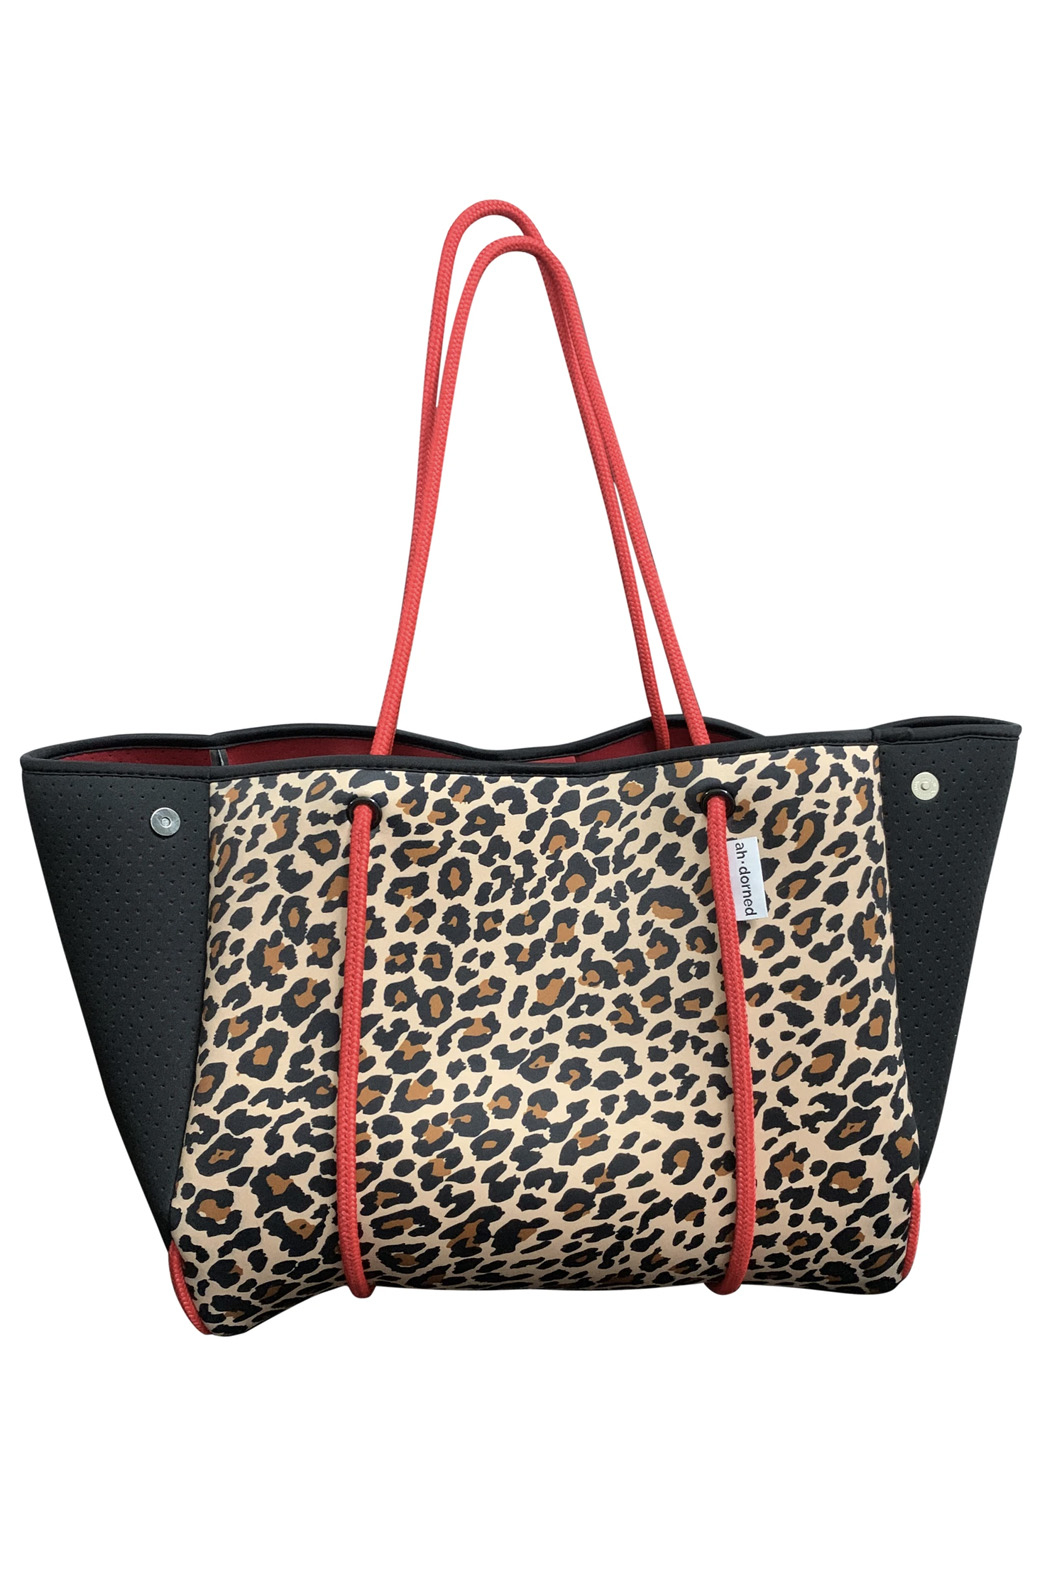 Ahdorned Leopard Neoprene Bag w/Black Perforated Sides & Red Straps - Main Image